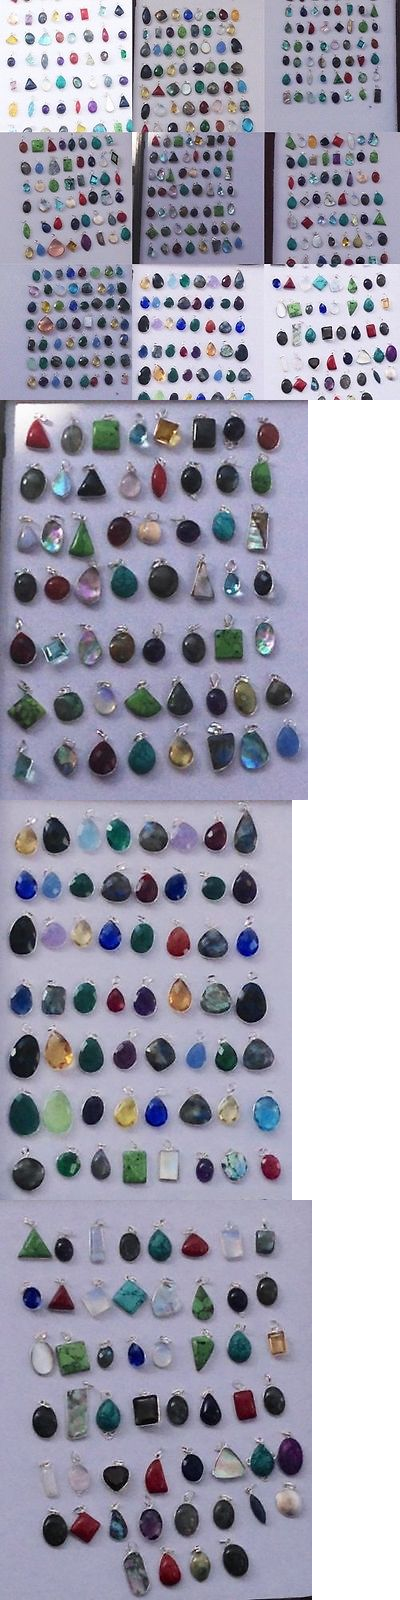 Pendants and Lockets 45079: 1000Pc Wholesale 925 Silver Plated All Variety Mix Gemstone Pendant Lot(1250Gm.) -> BUY IT NOW ONLY: $599 on eBay!